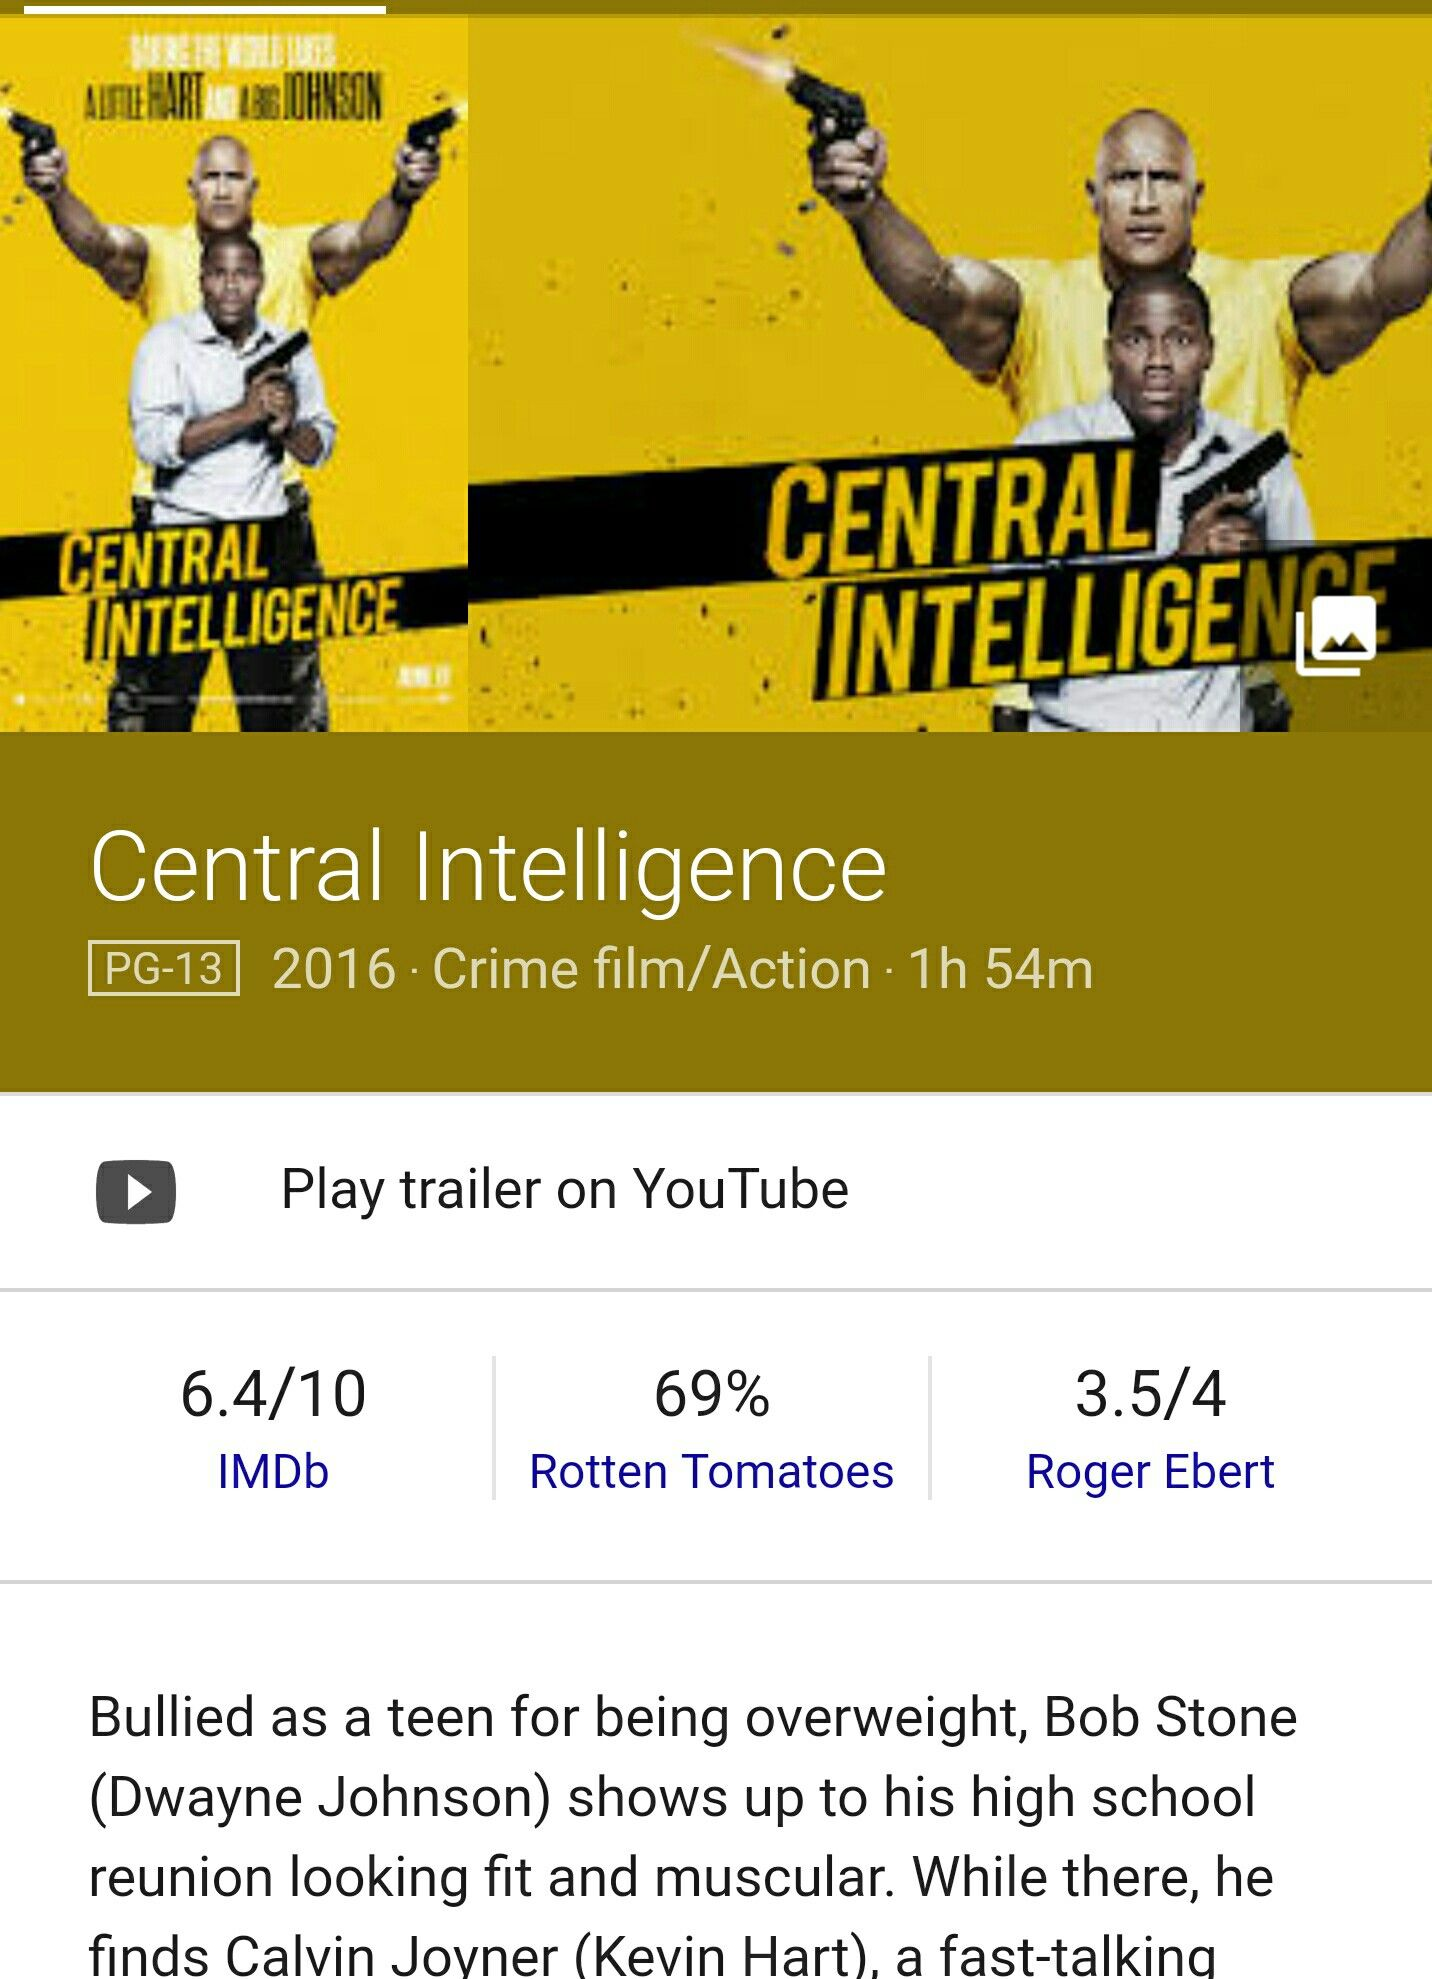 #watching #centralintelligence #bdcrmovies #movie #PortlandOregon